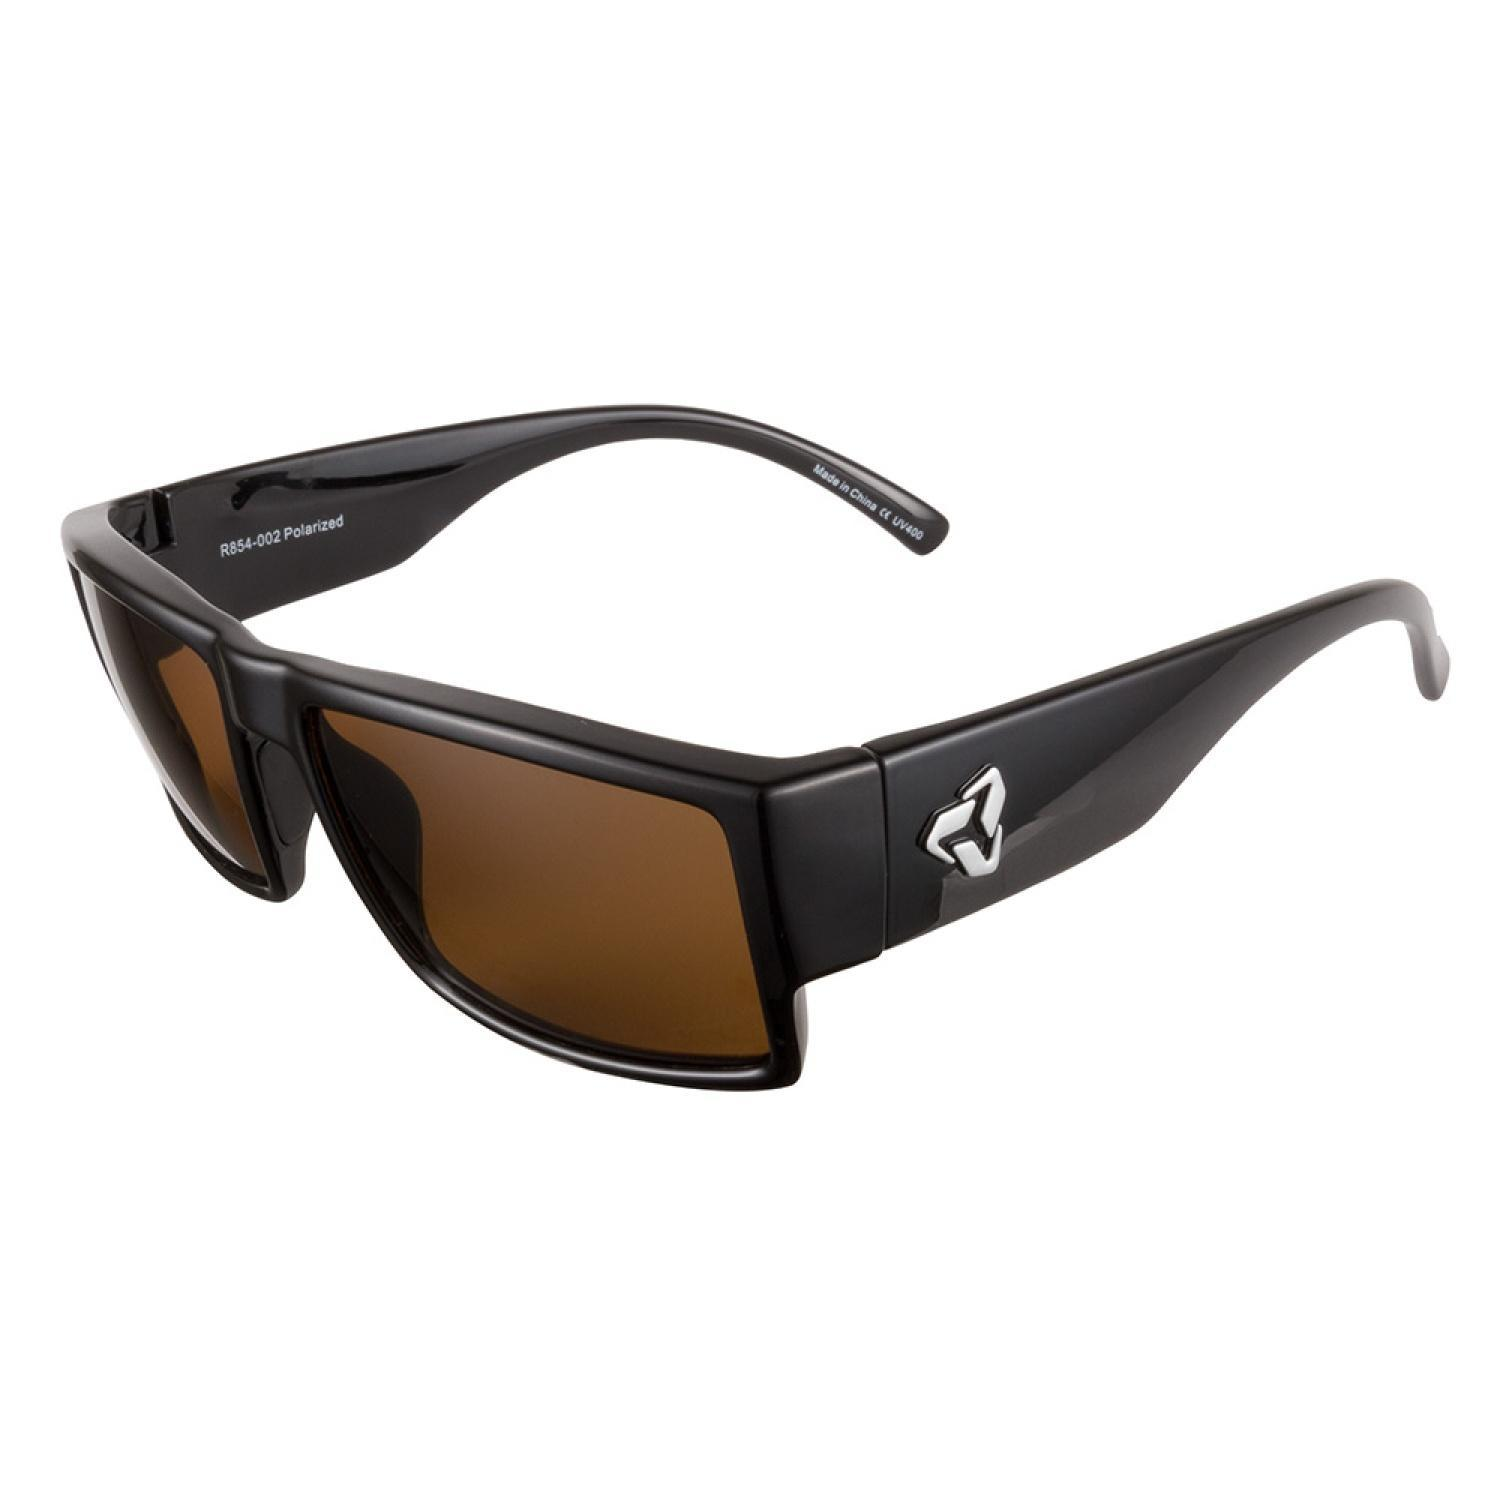 b0e99089b1f5 Shop Ryders Chops R854 002 Black Polarized Sunglasses - Free Shipping Today  - Overstock - 11708517